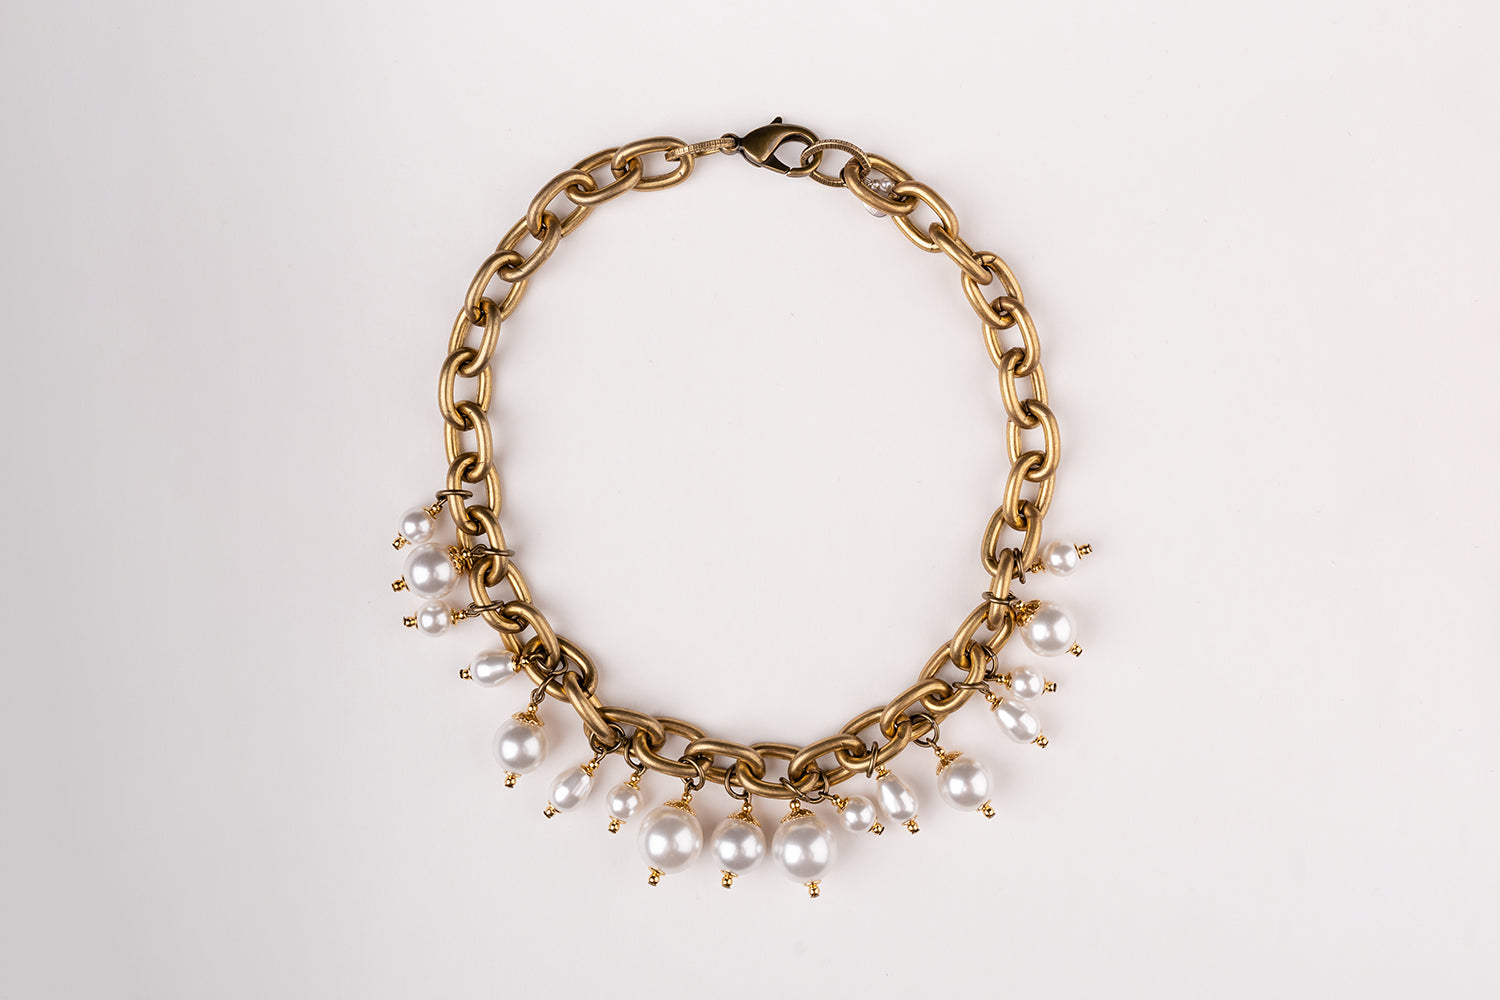 A Carolily Finery statement necklace made from antique gold chain and Swarovski crystal pearls